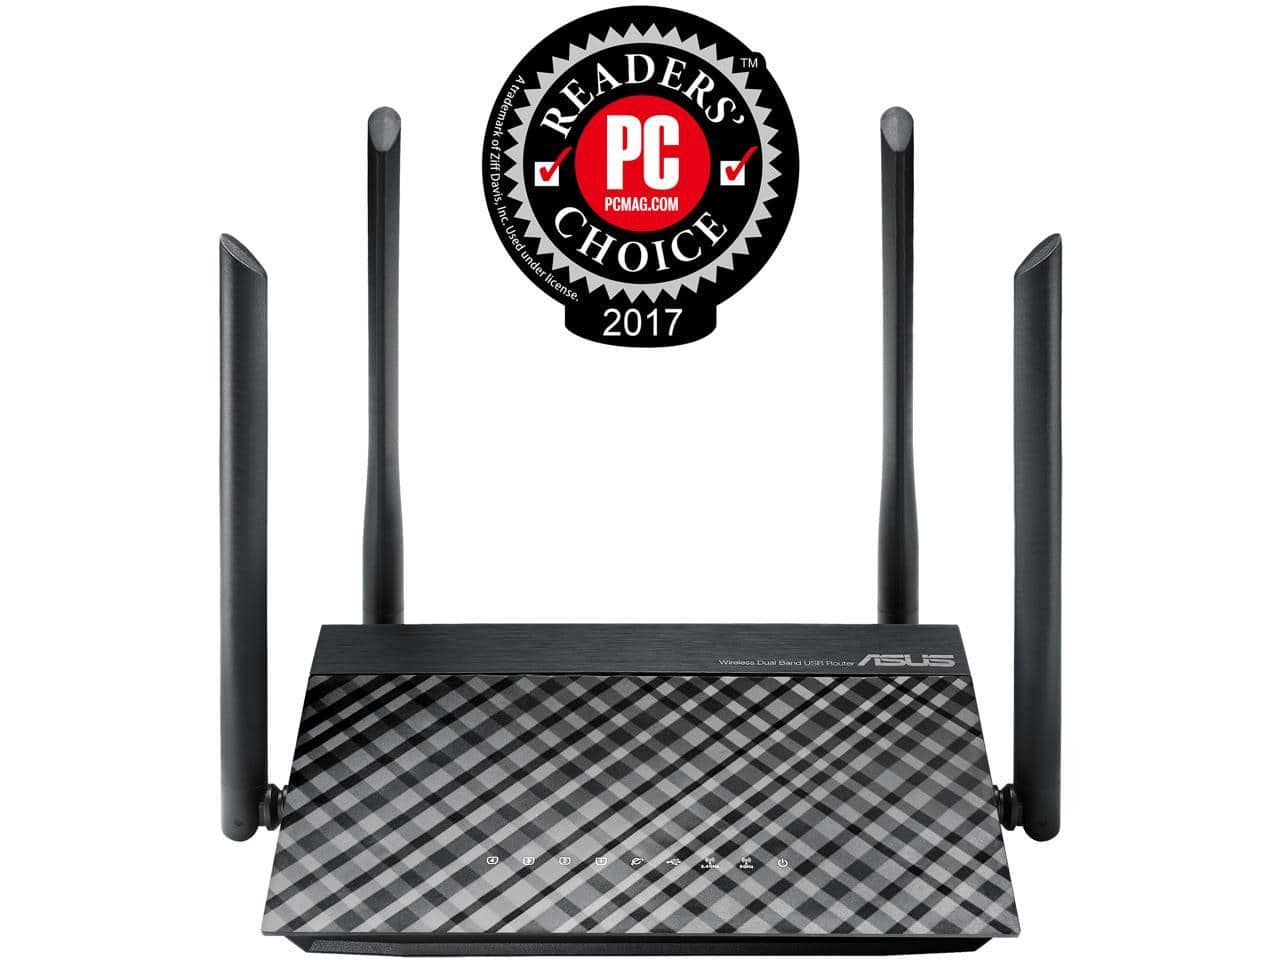 ASUS RT-AC1200 Dual-band 2x2 AC1200 Wi-Fi 4-port Router - $34.99 AC